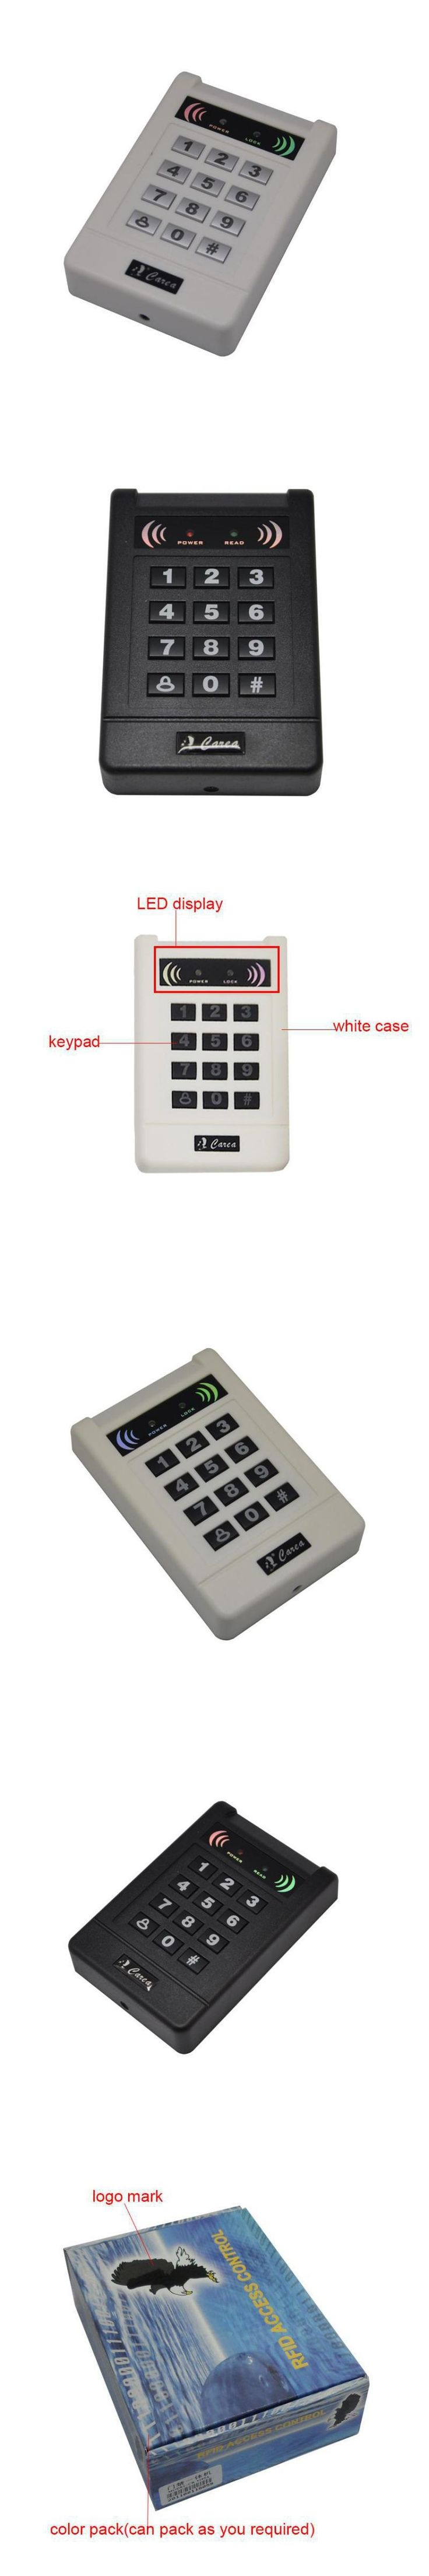 WG26 RFID 125KHZ ID Smart Card Keypad Reader Wiegand 26 / 34 Proximity Card Reader FoR Door Access Control Security System